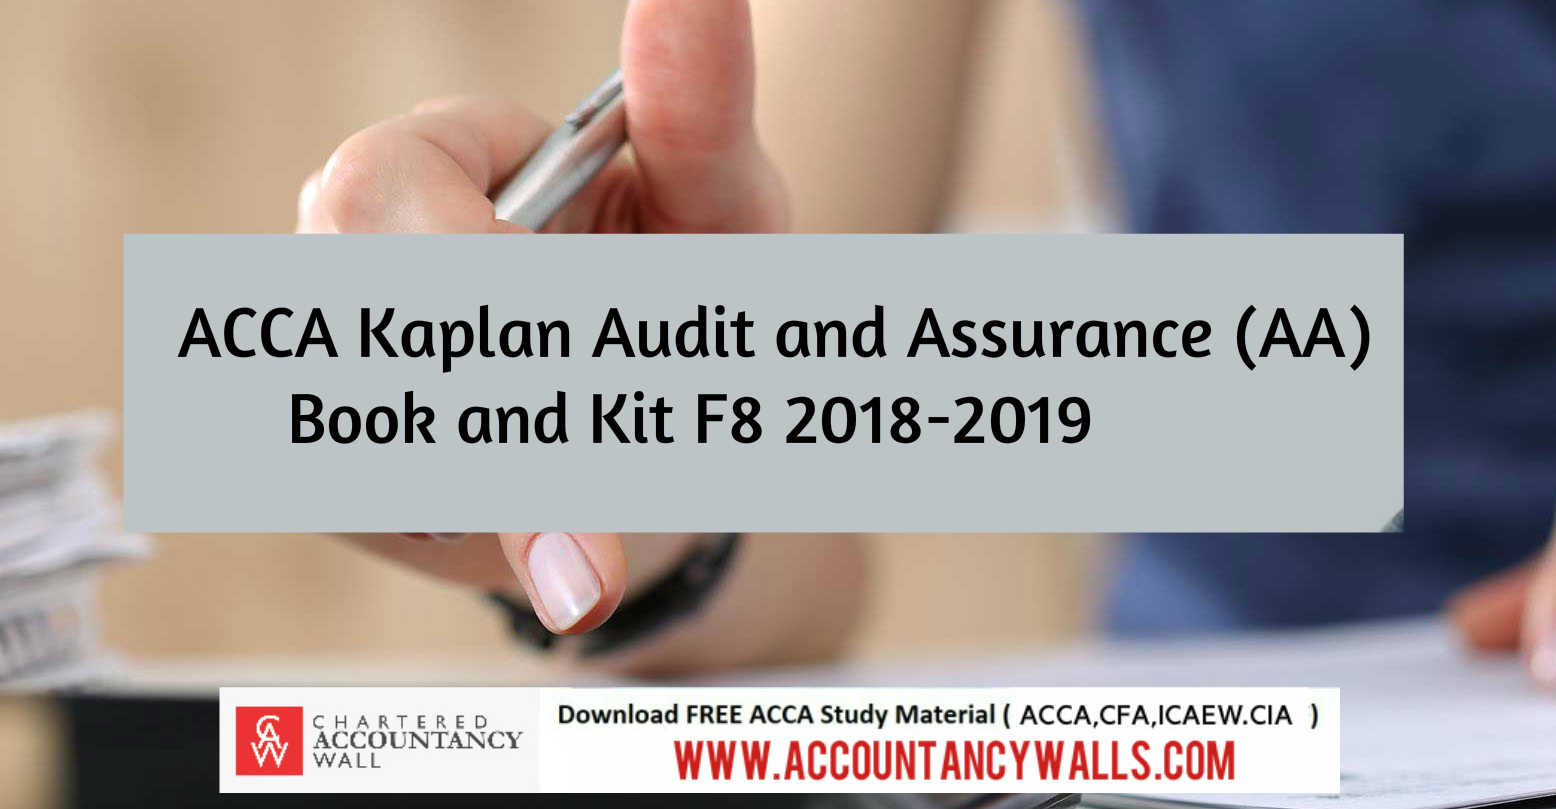 ACCA Kaplan Audit and Assurance Book and kit 2018-2019 - FREE